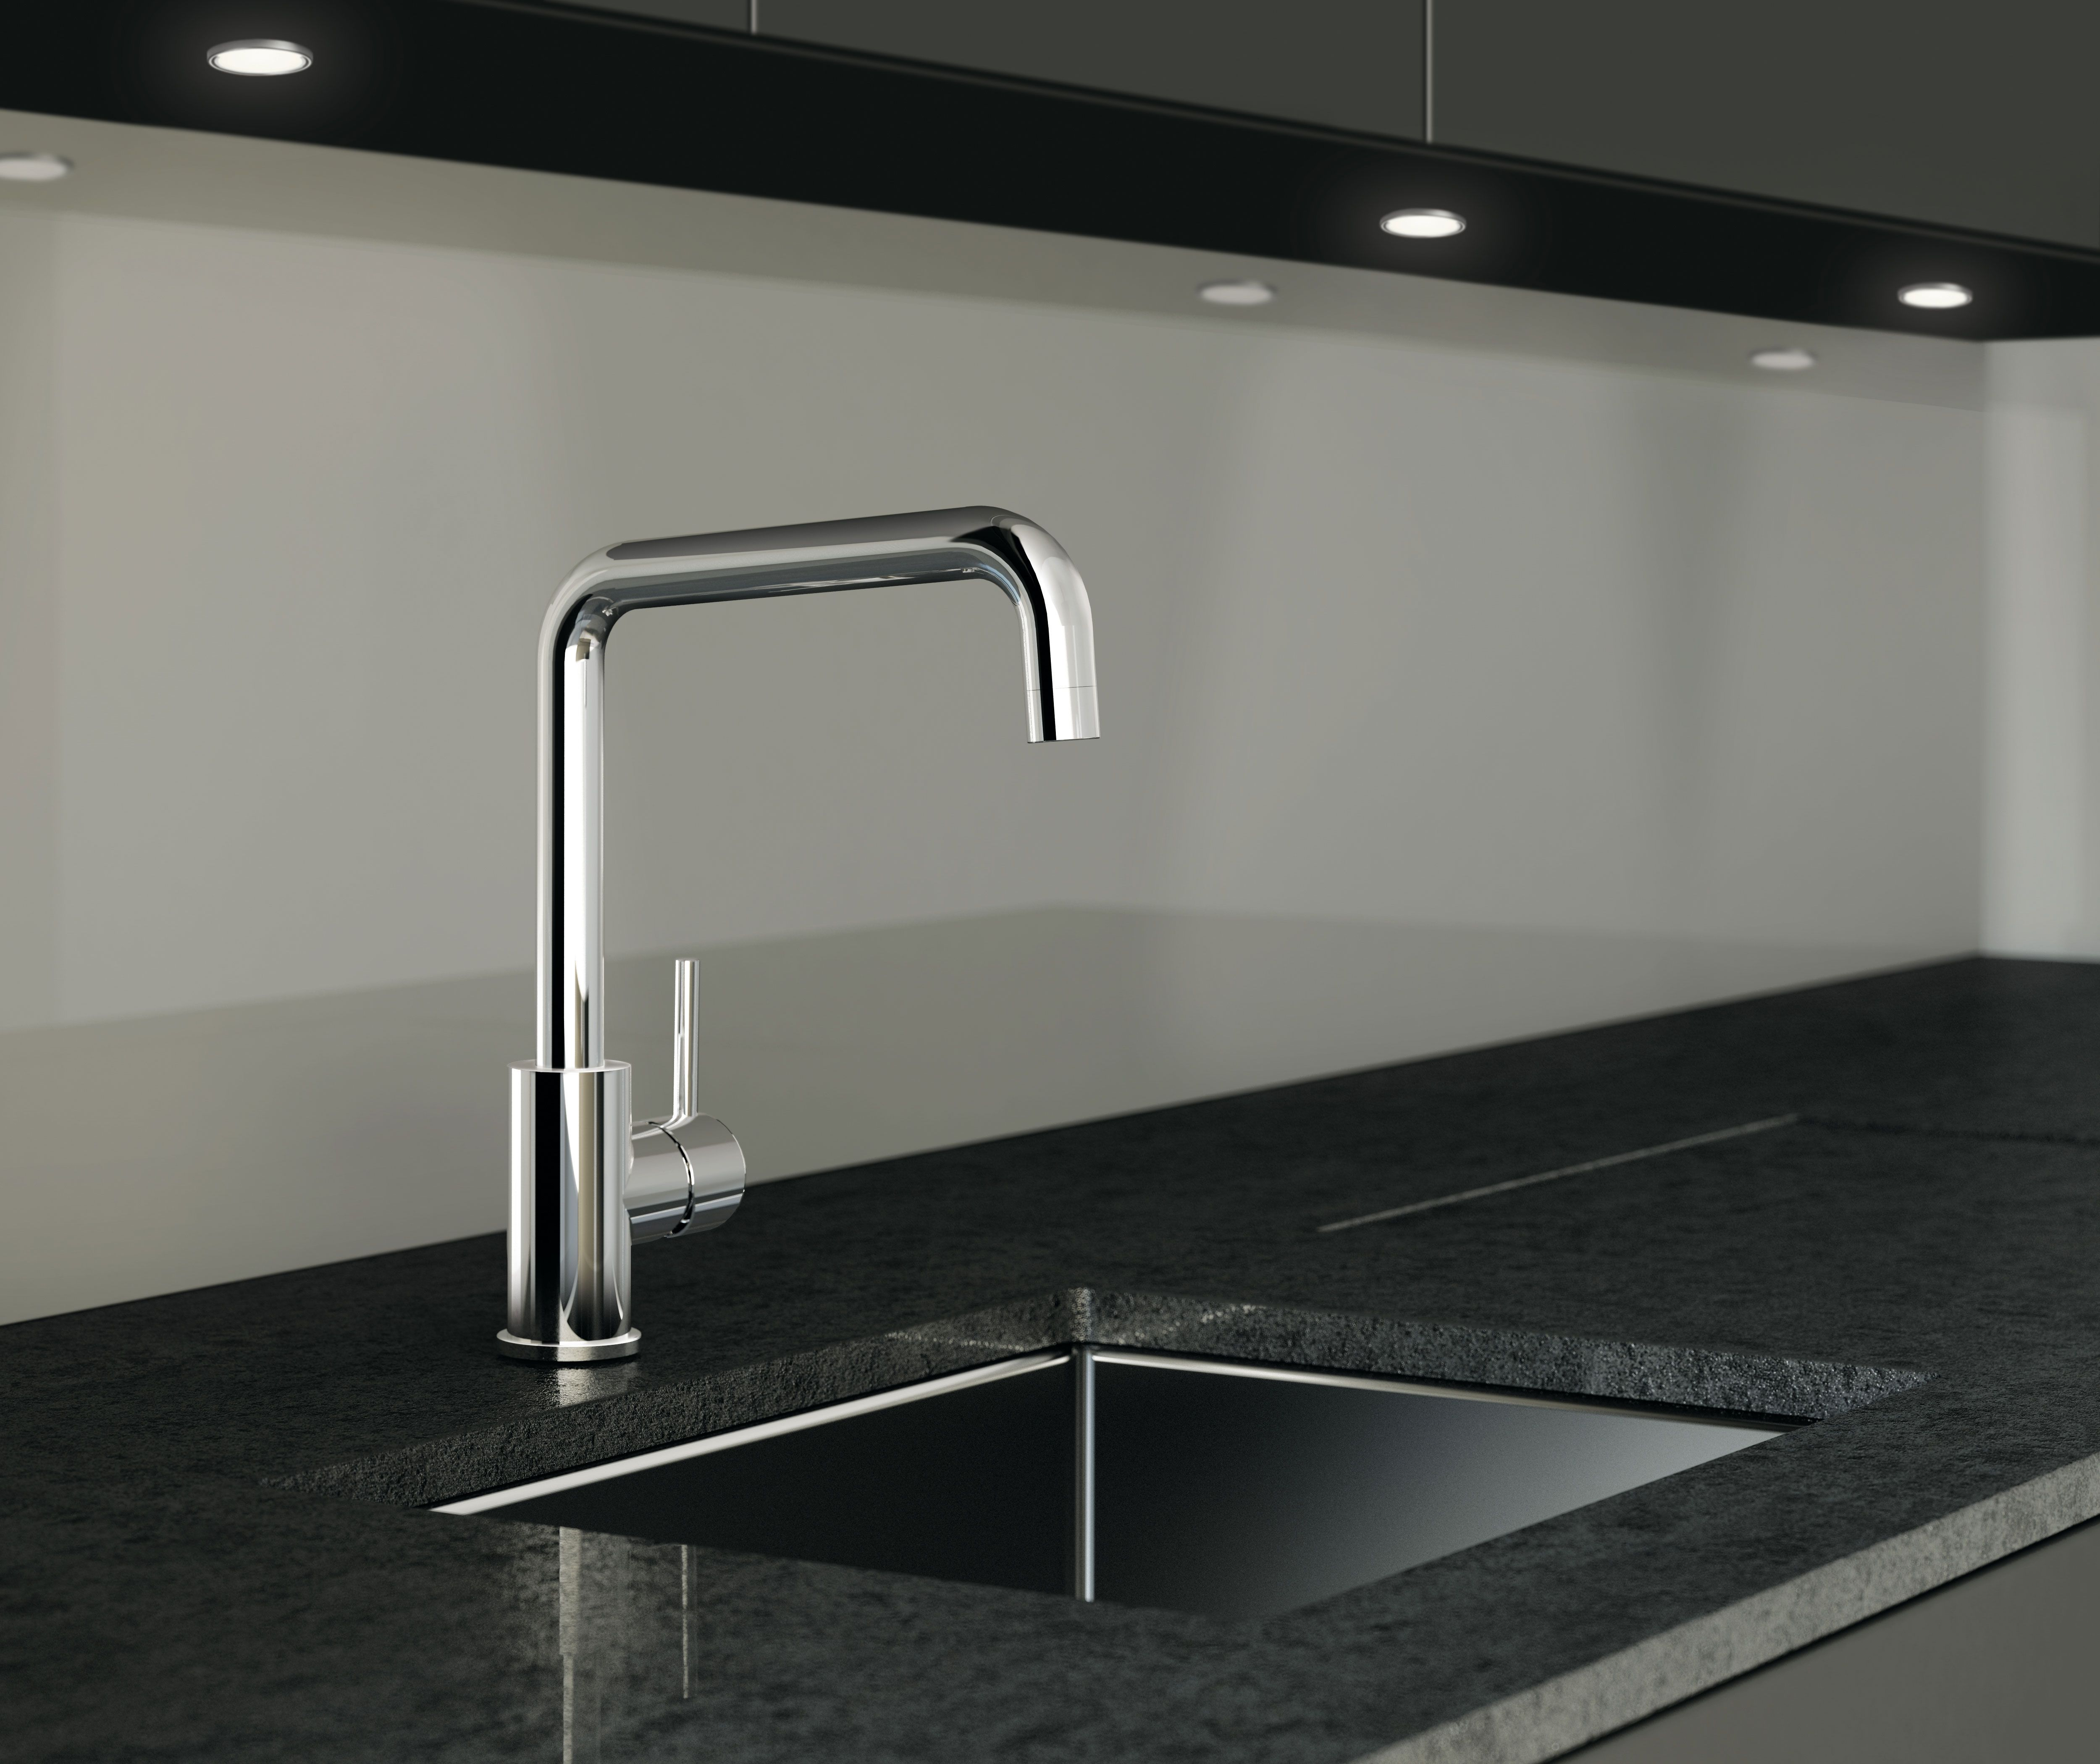 Deck-mounted sink mixer, Chrome finishing